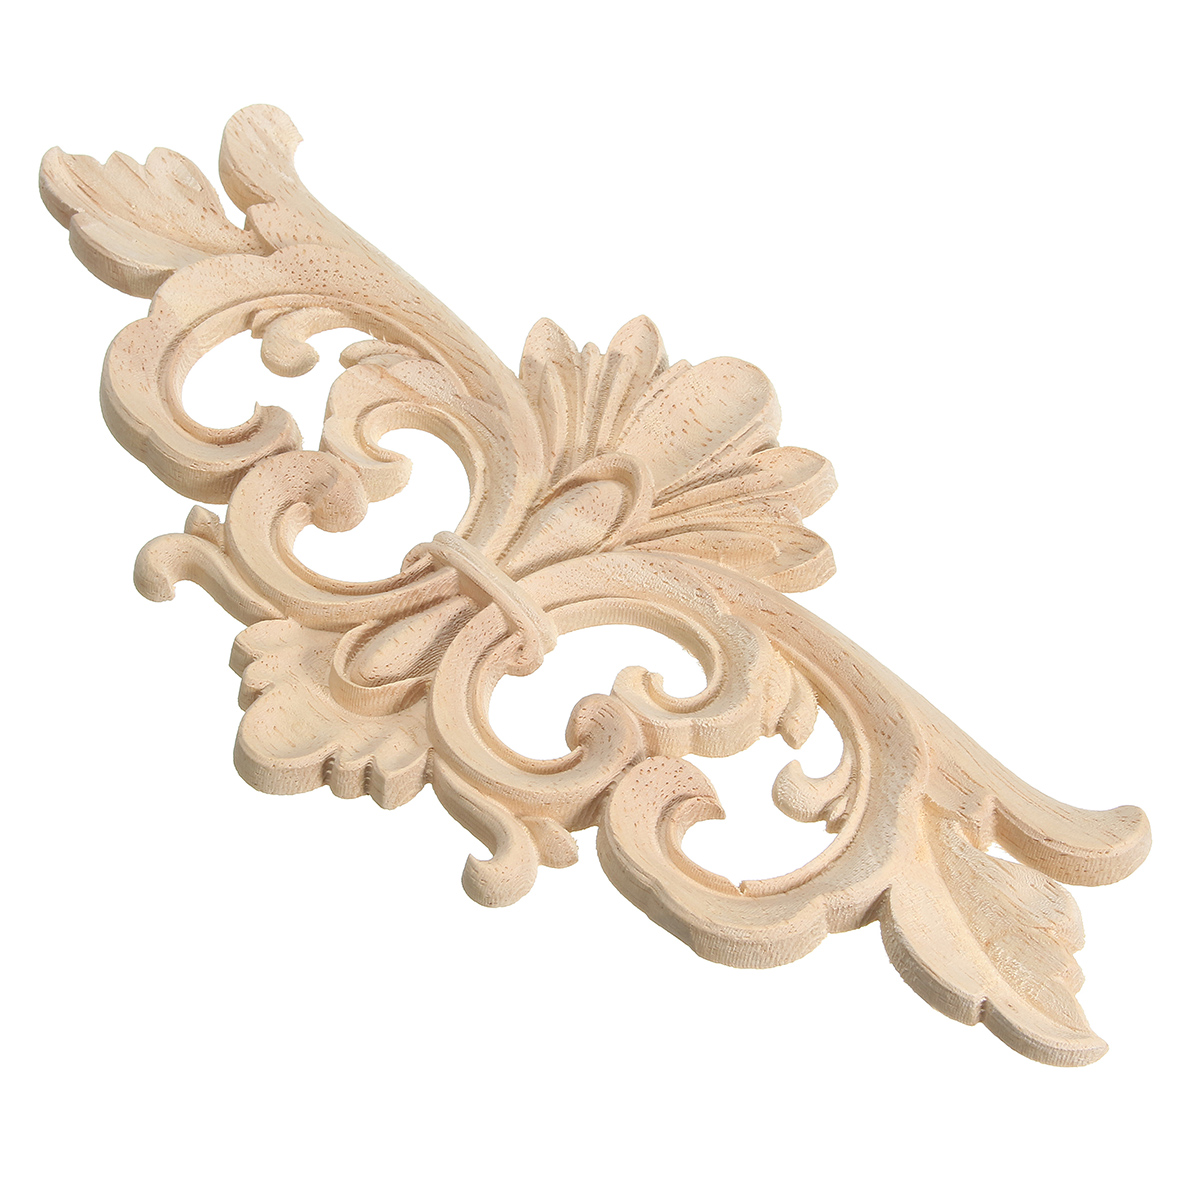 Vintage Unpainted Wood Carved Decal Corner Onlay Applique Frame for Home Furniture Wall Cabinet Door Decor Crafts 30x8cm